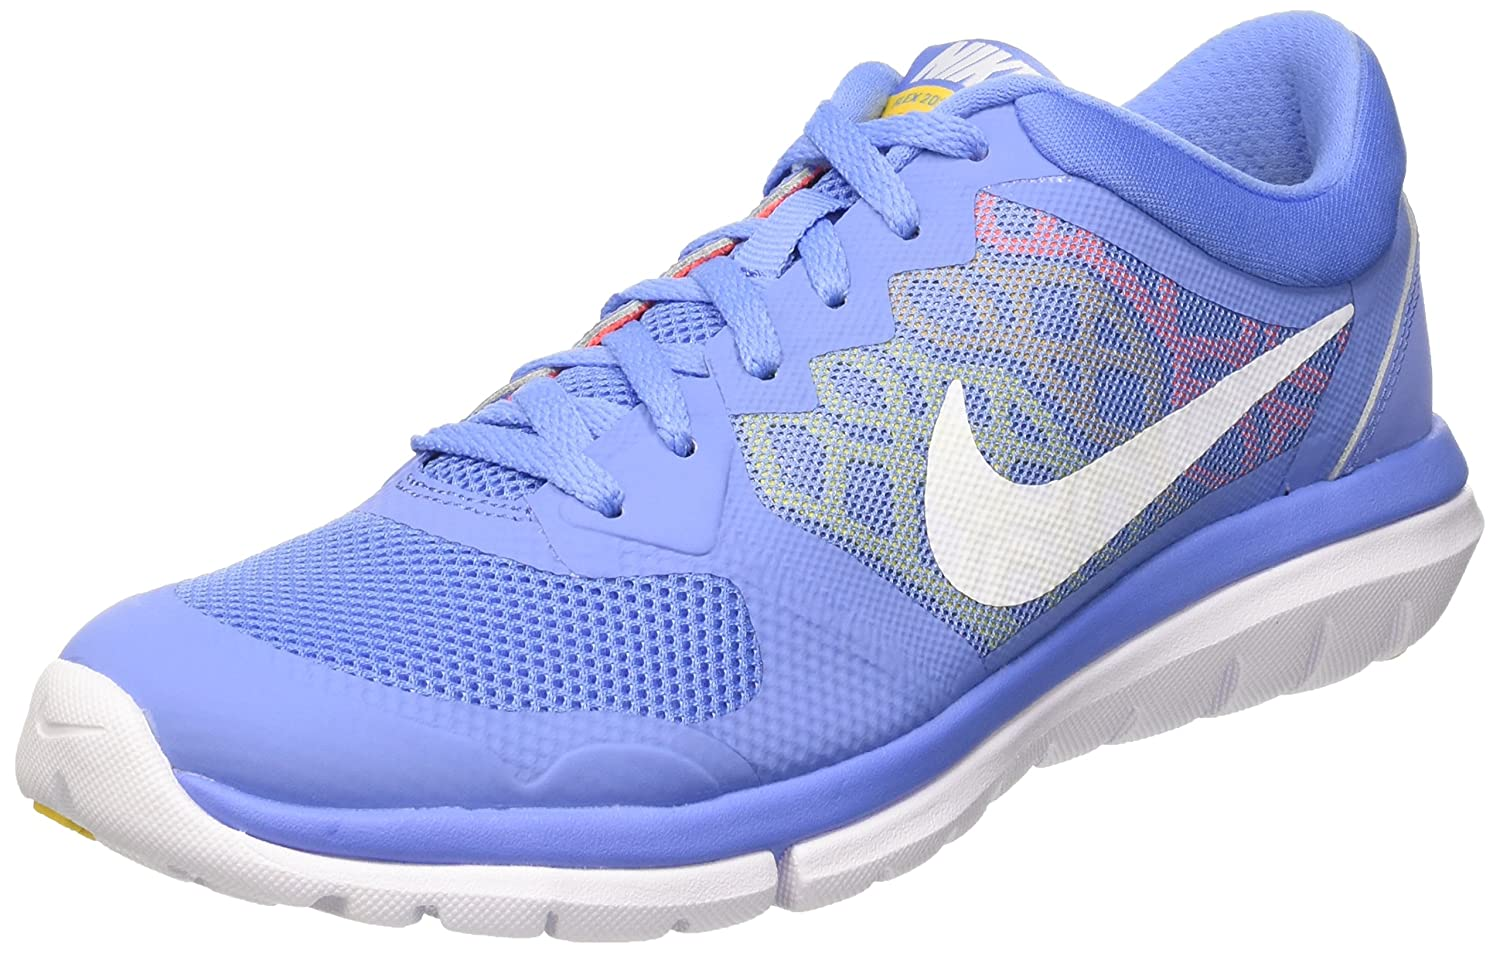 8bfb85d2c89a4 NIKE Women s Flex Run 2015 Running Shoes Multicolour Size  6  Amazon.co.uk   Shoes   Bags